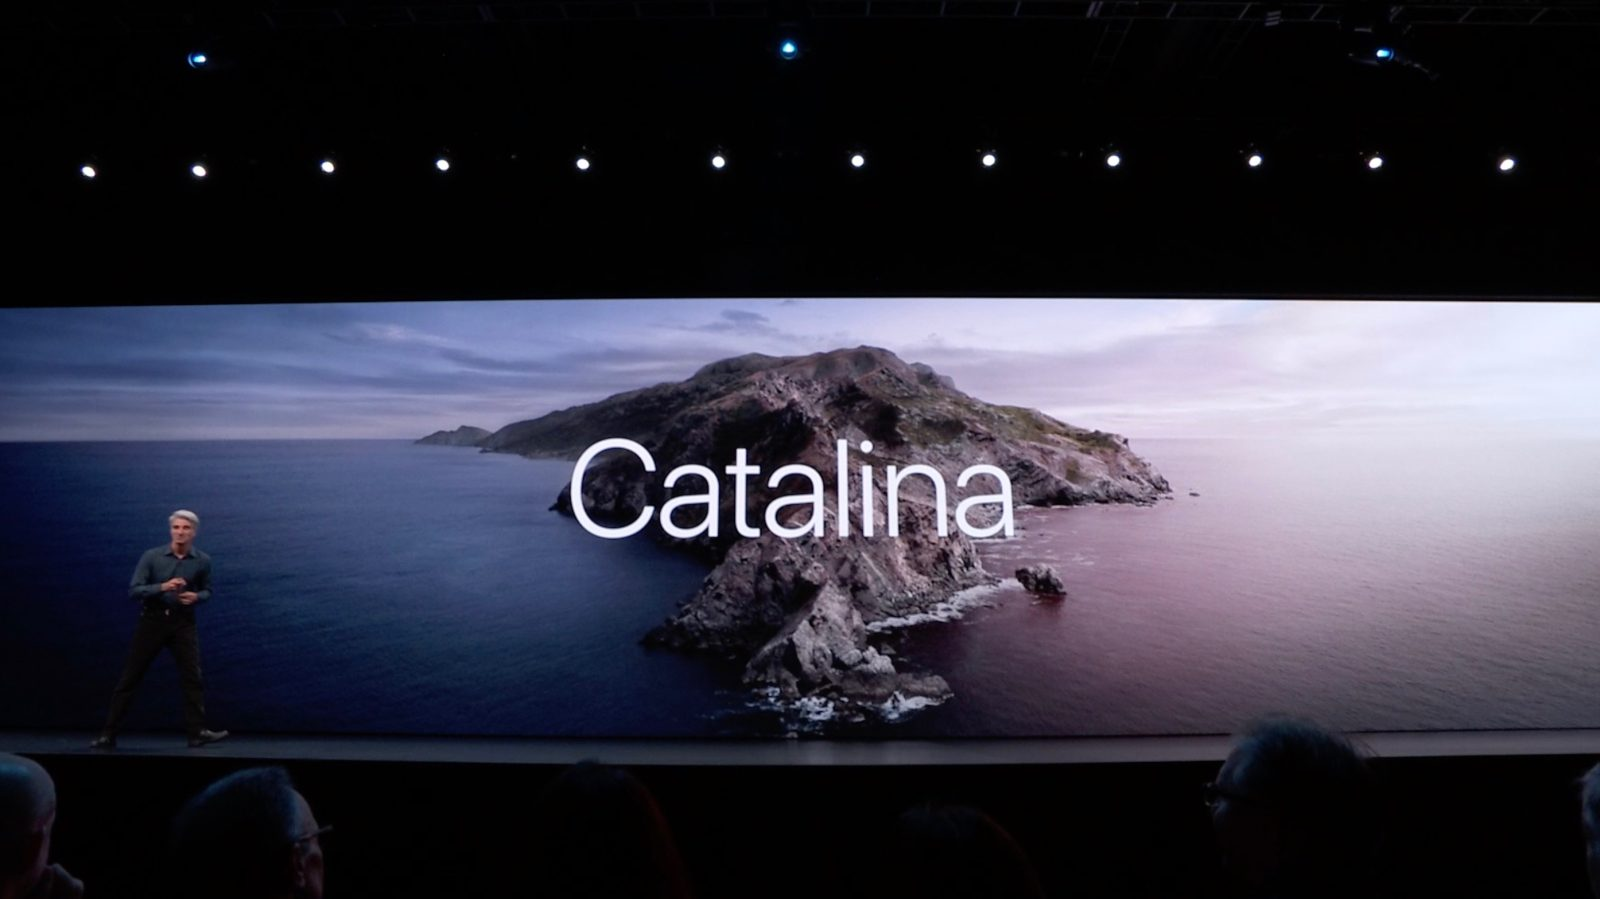 Download the new macOS Catalina